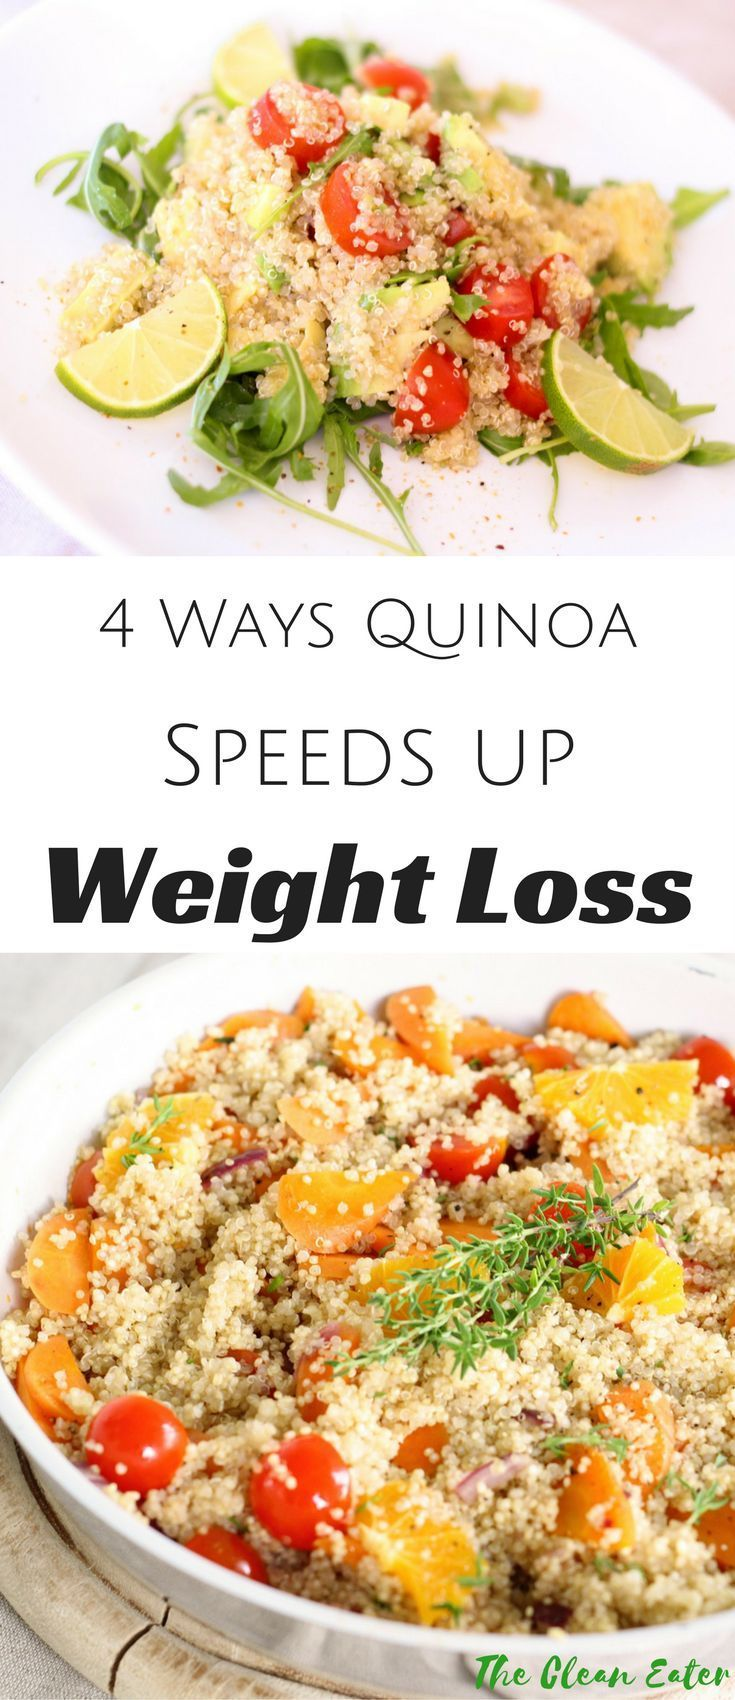 Quinoa offers various health benefits and weight loss is one of them! Learn how quinoa can speed up your weight loss process! |weight loss| healthy diet| clean eating| thecleaneater.com